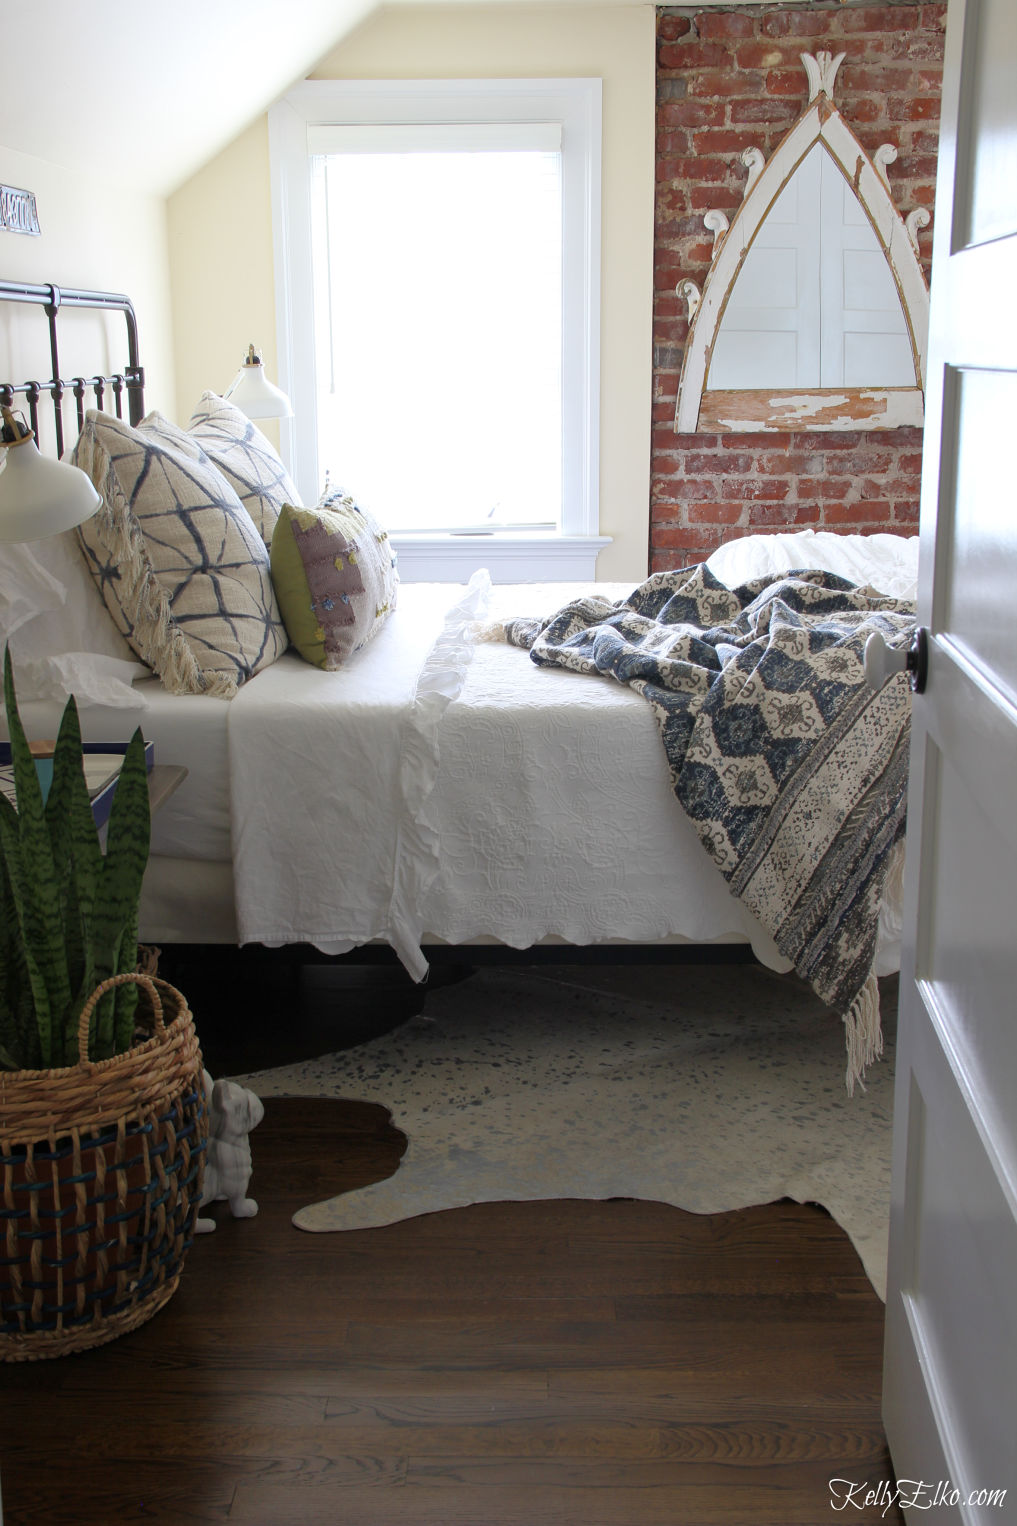 Guest bedroom decor - love the exposed brick wall and vintage style metal bed kellyelko.com #bedroom #bedrooms #bedroomdecor #interiordesign #vintagedecor #bohodecor